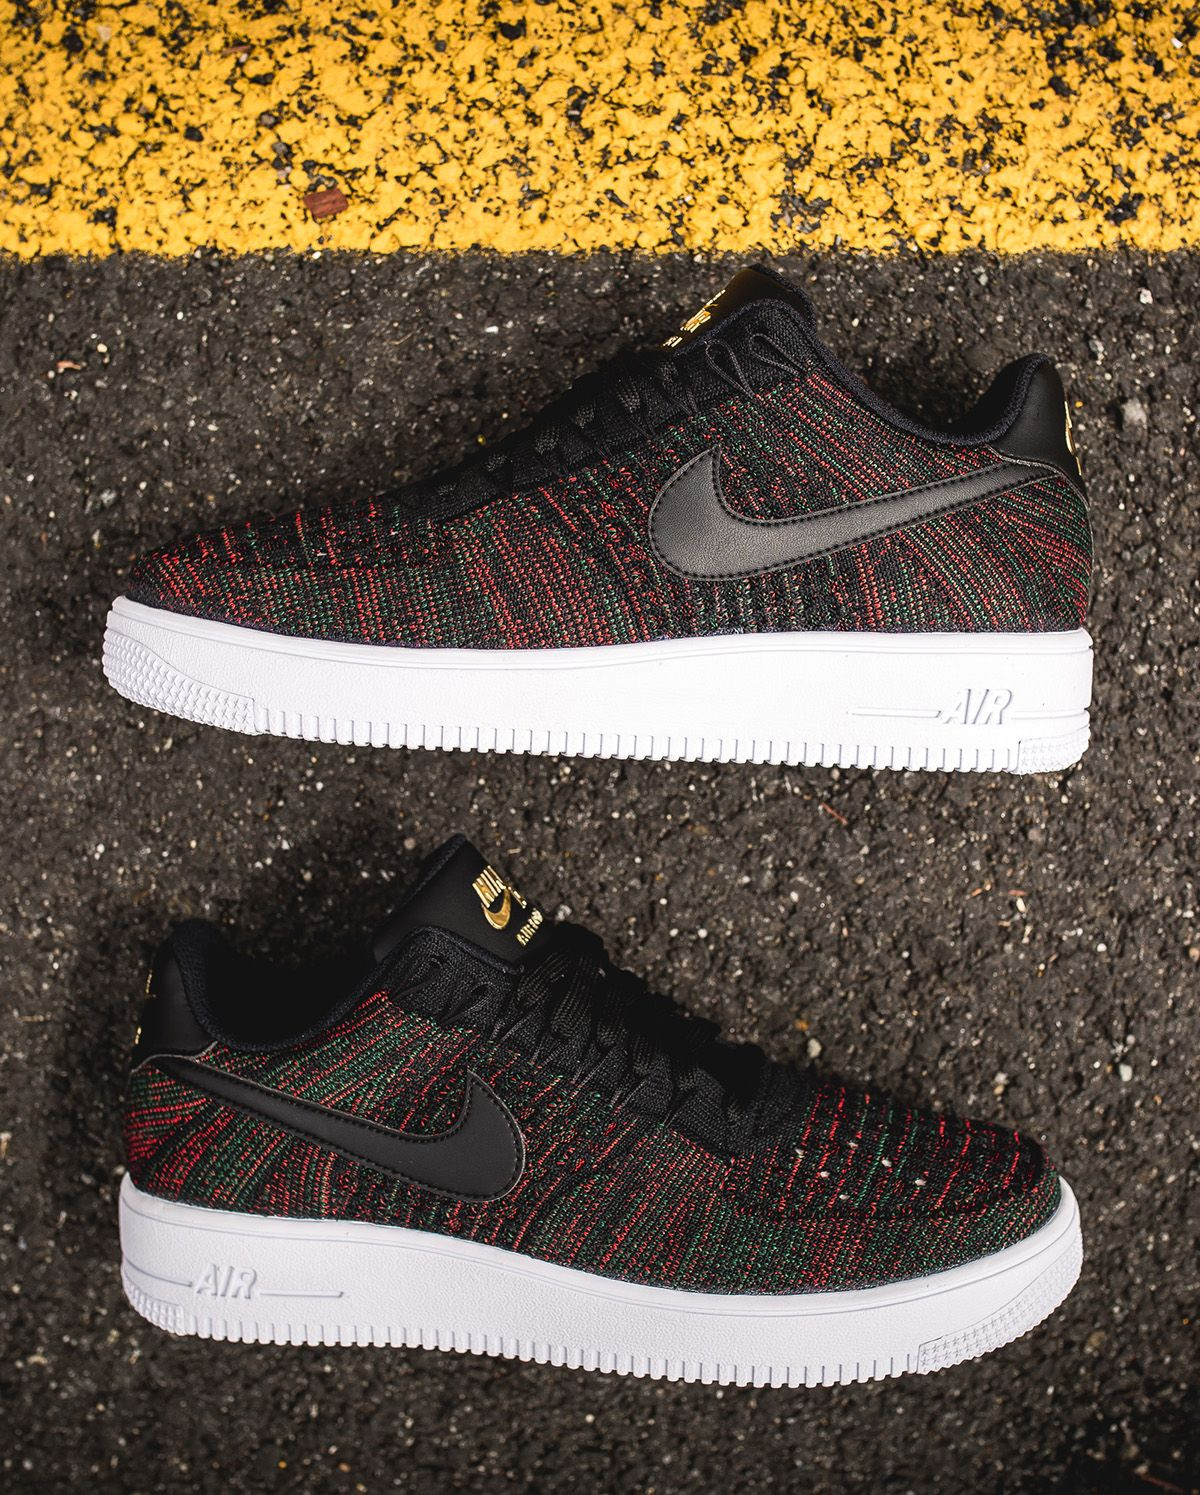 Nike Air Force 1 Ultra Flyknit Low in Gucci Colors Nike